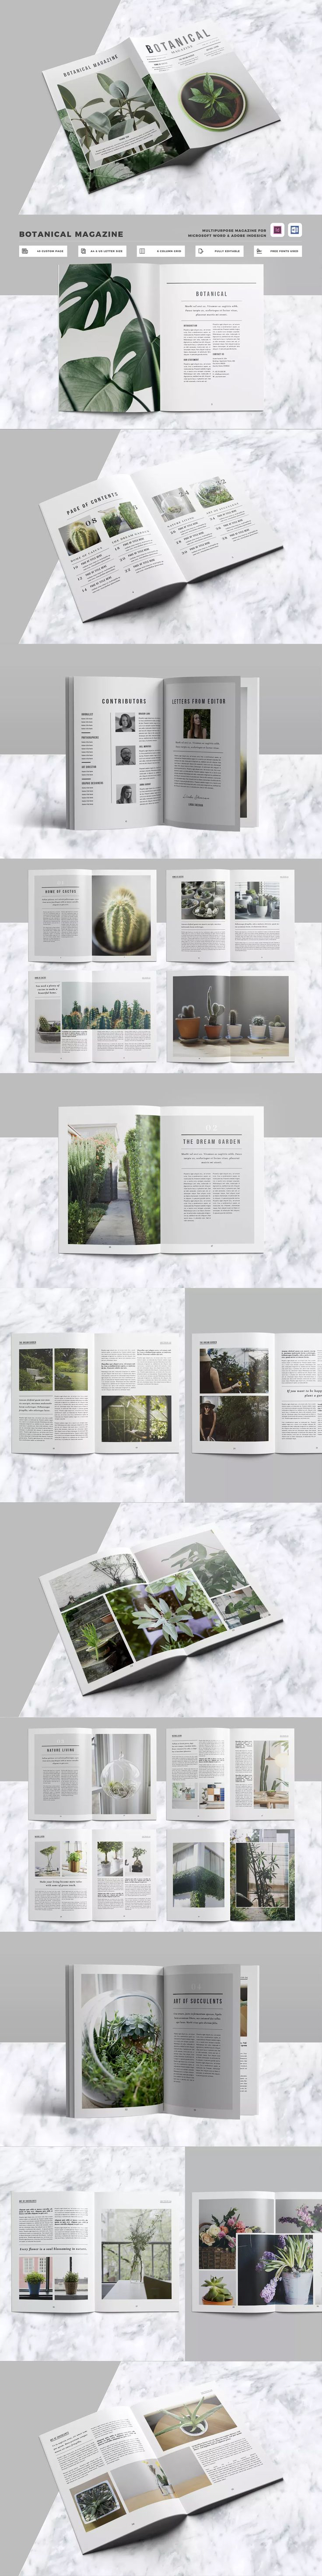 Clean & Professional Magazine Template InDesign INDD - 40 Pages A4 & US Letter Size